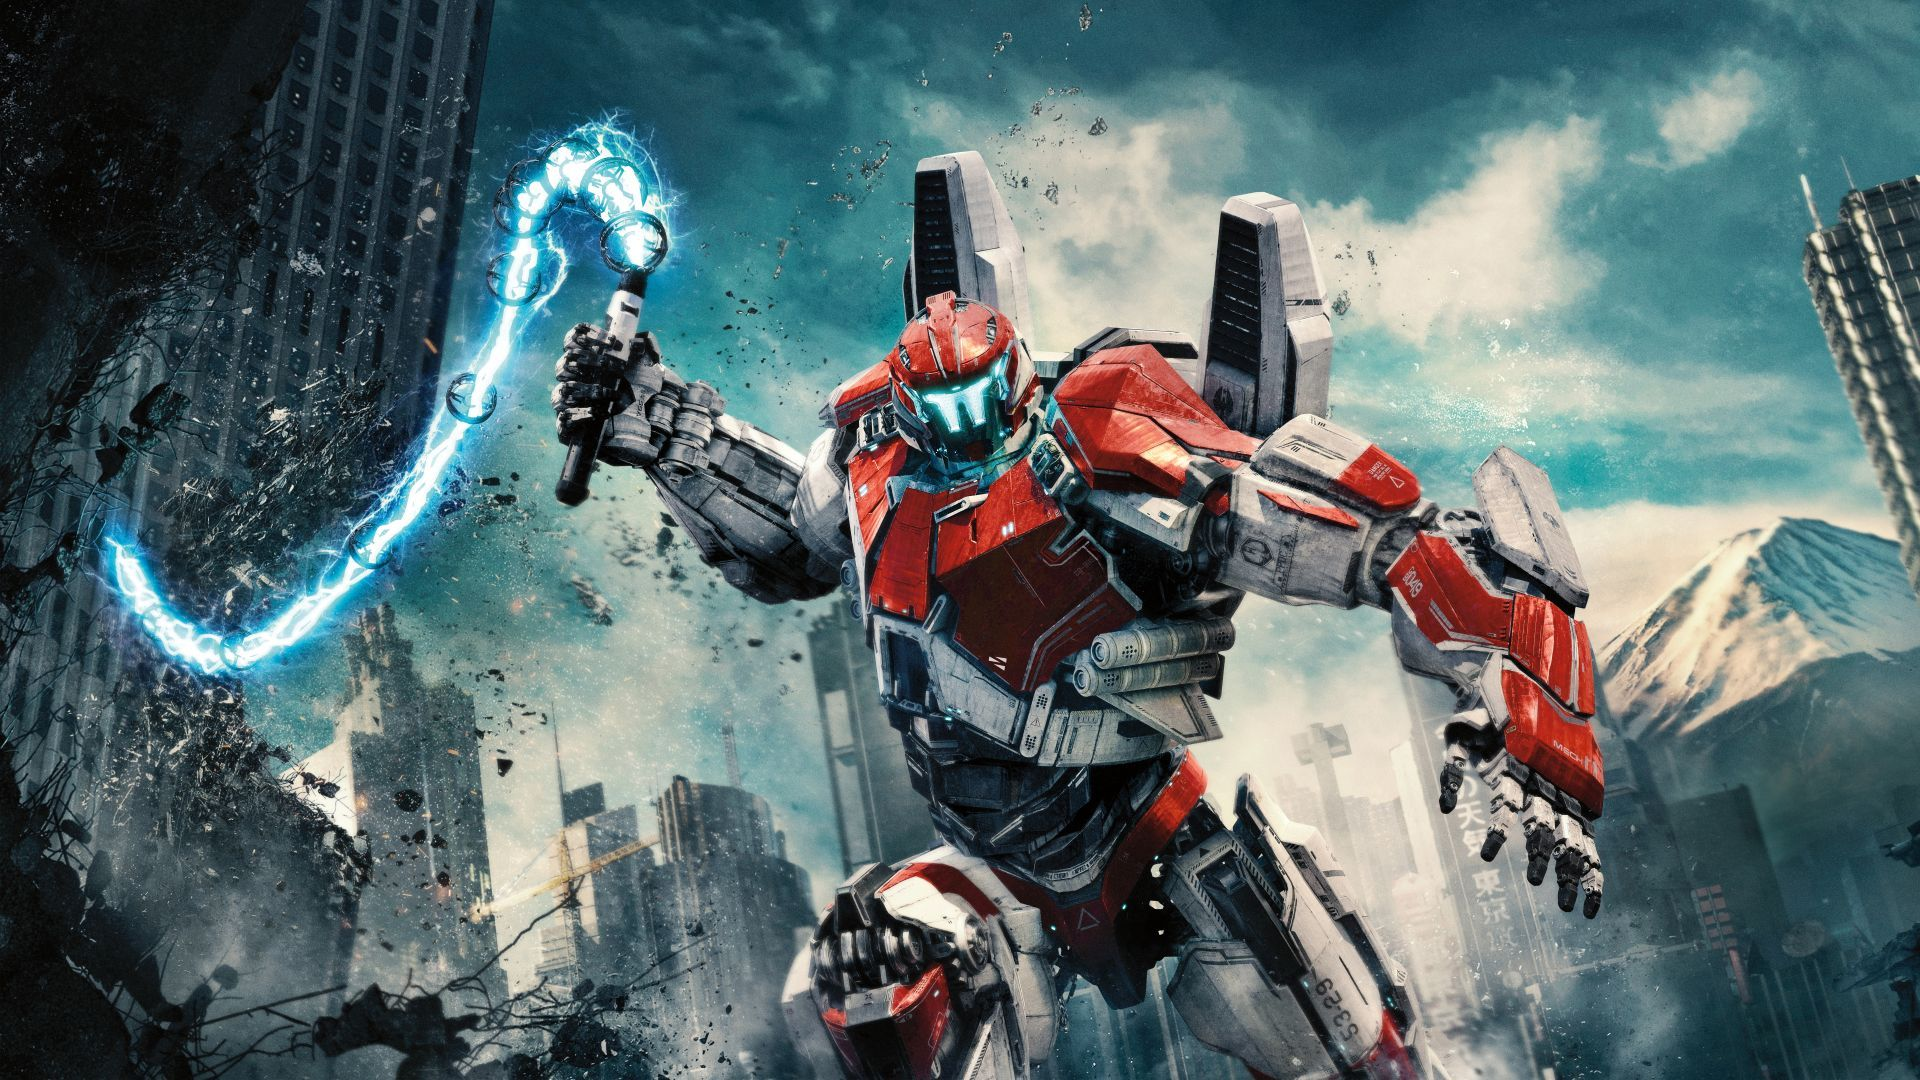 Download Wallpapers Of Guardian Bravo Pacific Rim Uprising 4k 8k Movies 12588 Available In Hd 4k Resol Pacific Rim Pacific Rim Kaiju Pacific Rim Jaeger